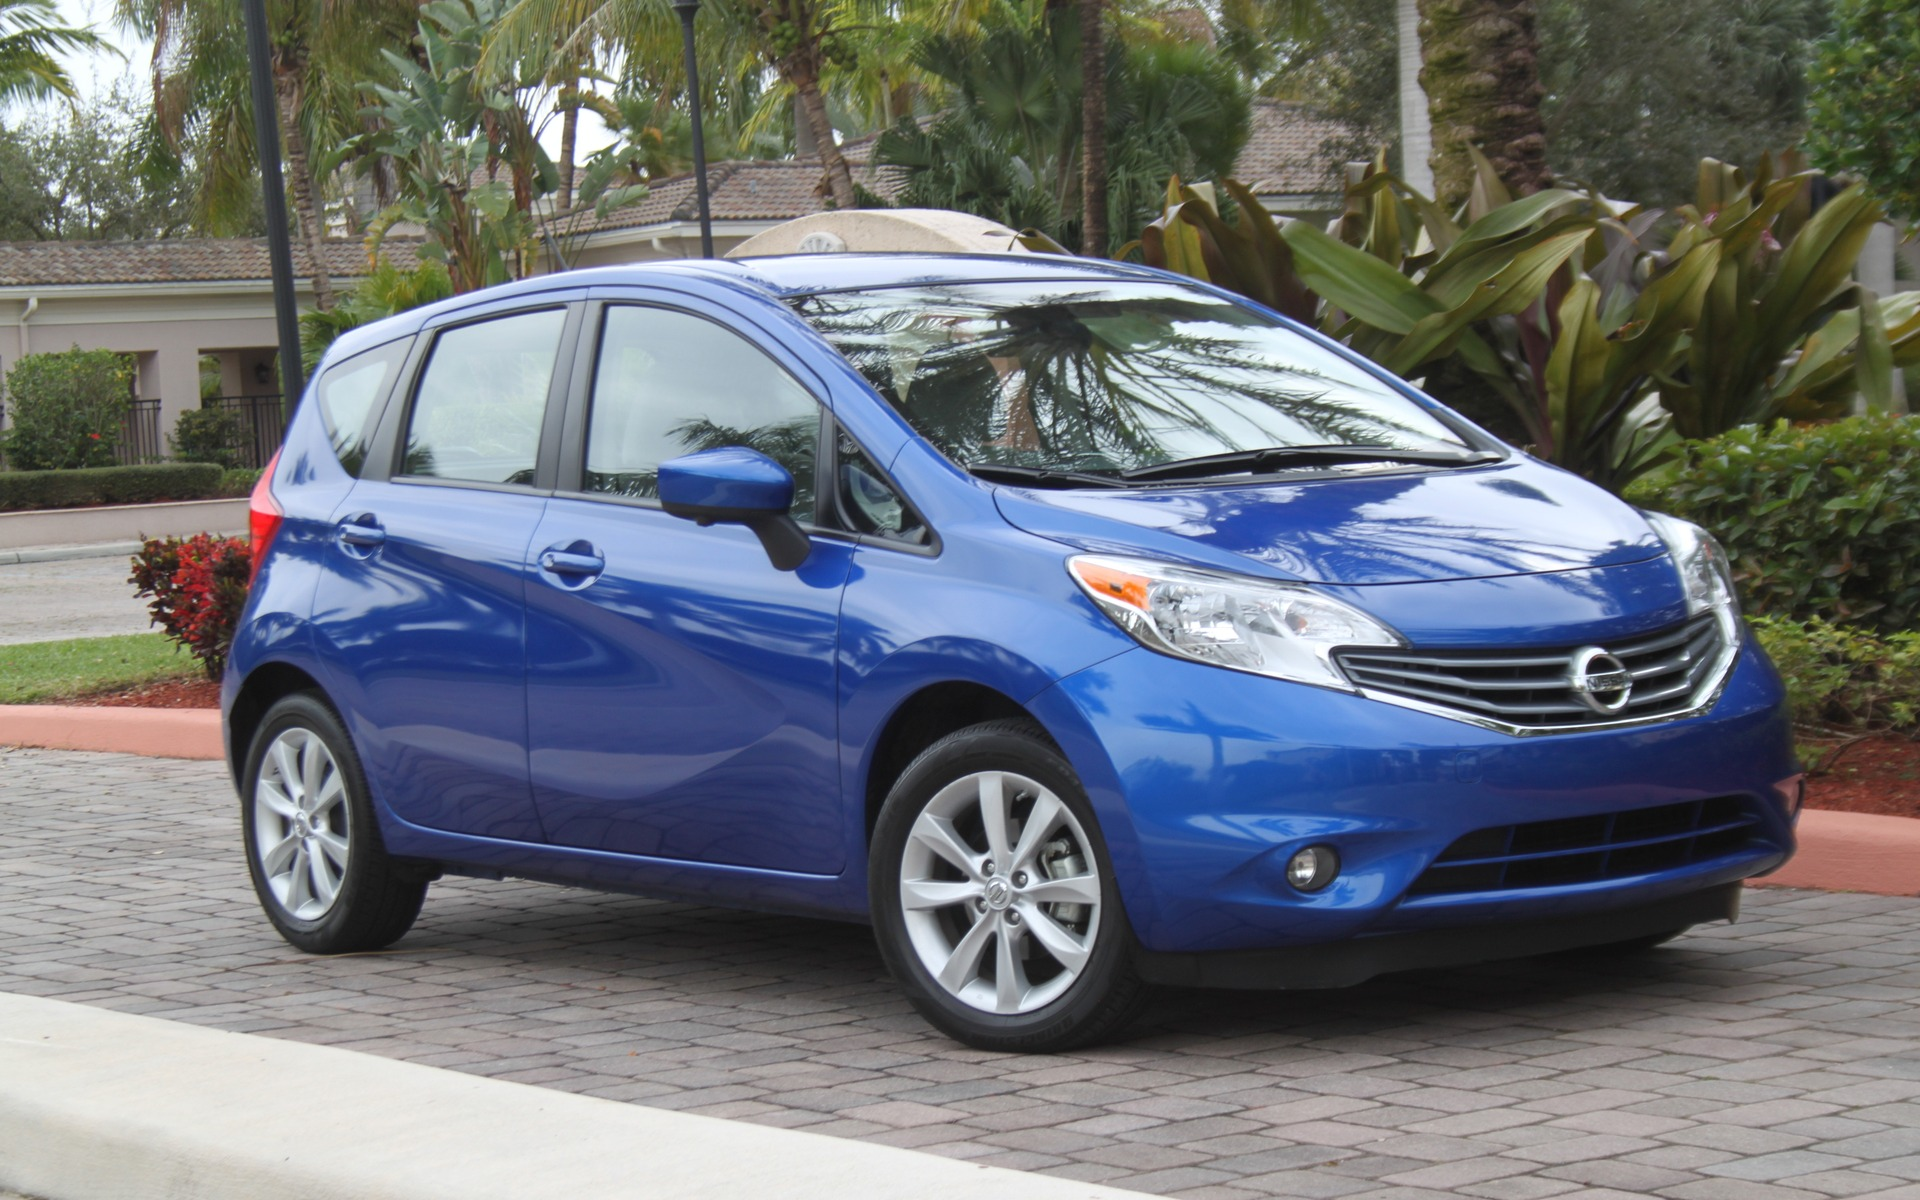 2016 Nissan Versa   News, Reviews, Picture Galleries And Videos   The Car  Guide